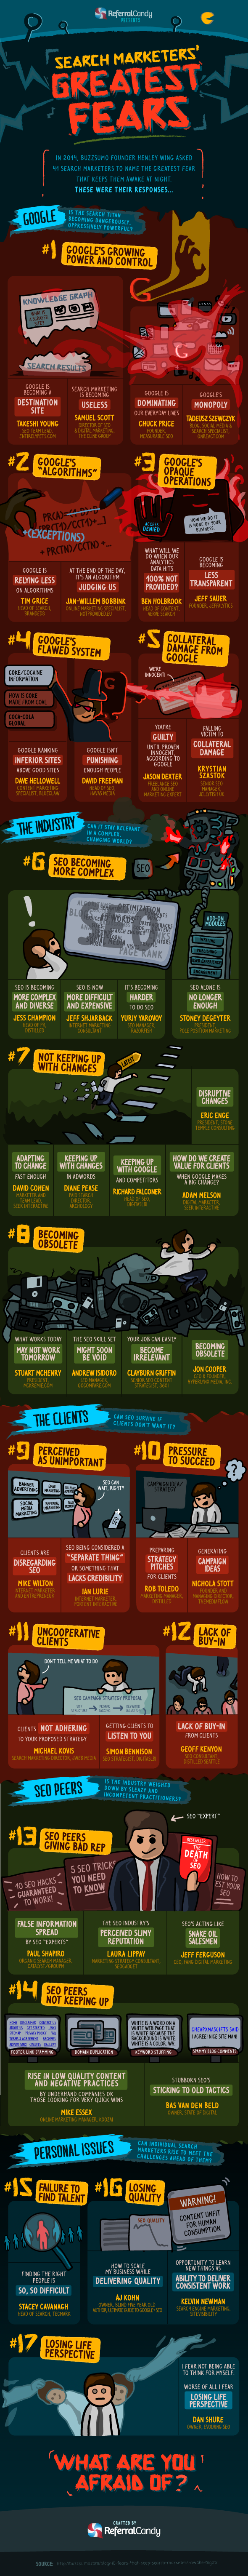 Search Marketers' Greatest Fears [Infographic]